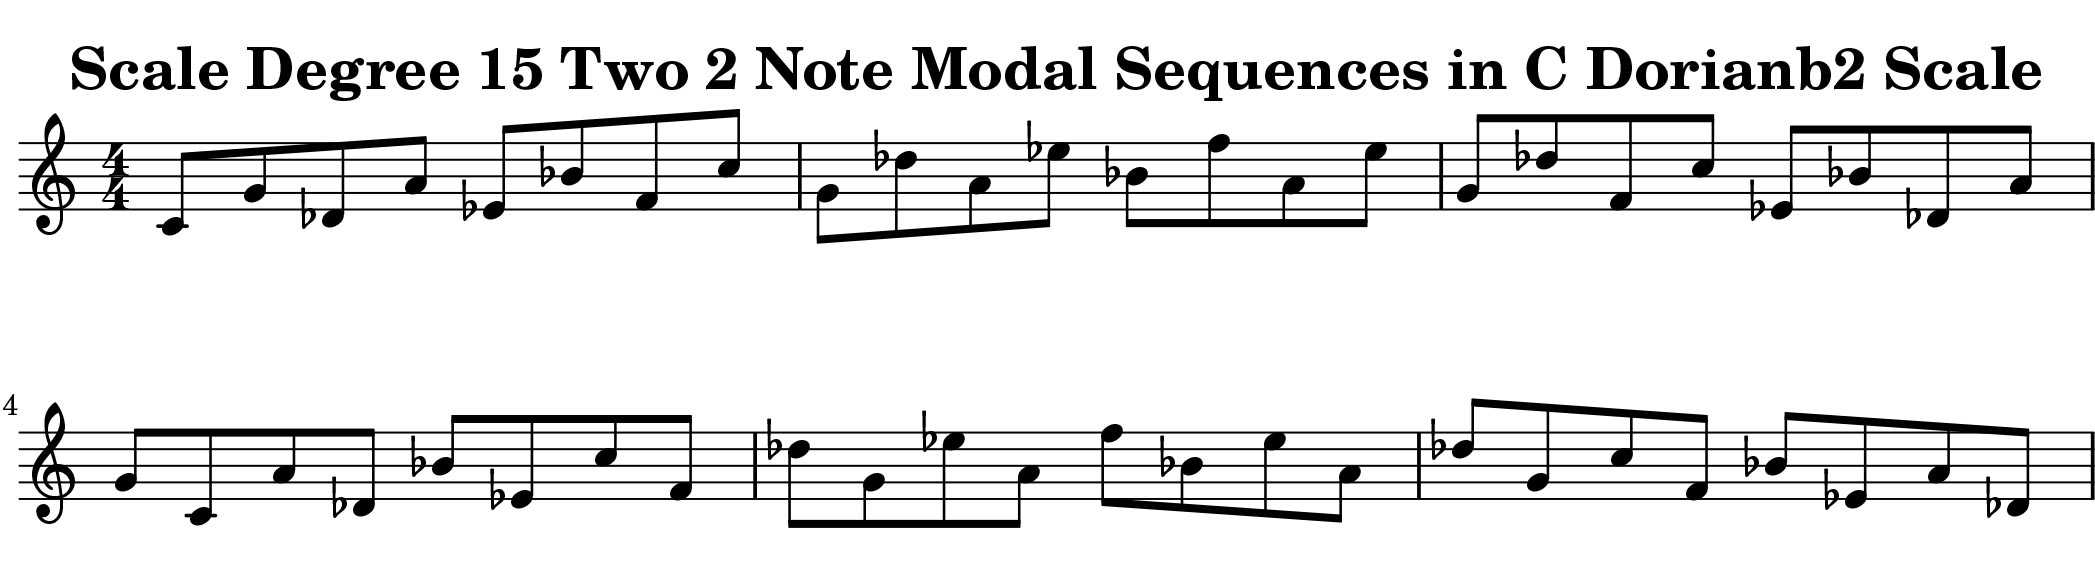 Dorian b2 Scale Modal Sequencing 2 Note One_Octave Ascending and Descending Modal Sequencing 2 Note Group 4 for all instrumentalist by Bruce Arnold for Muse Eek Publishing Company